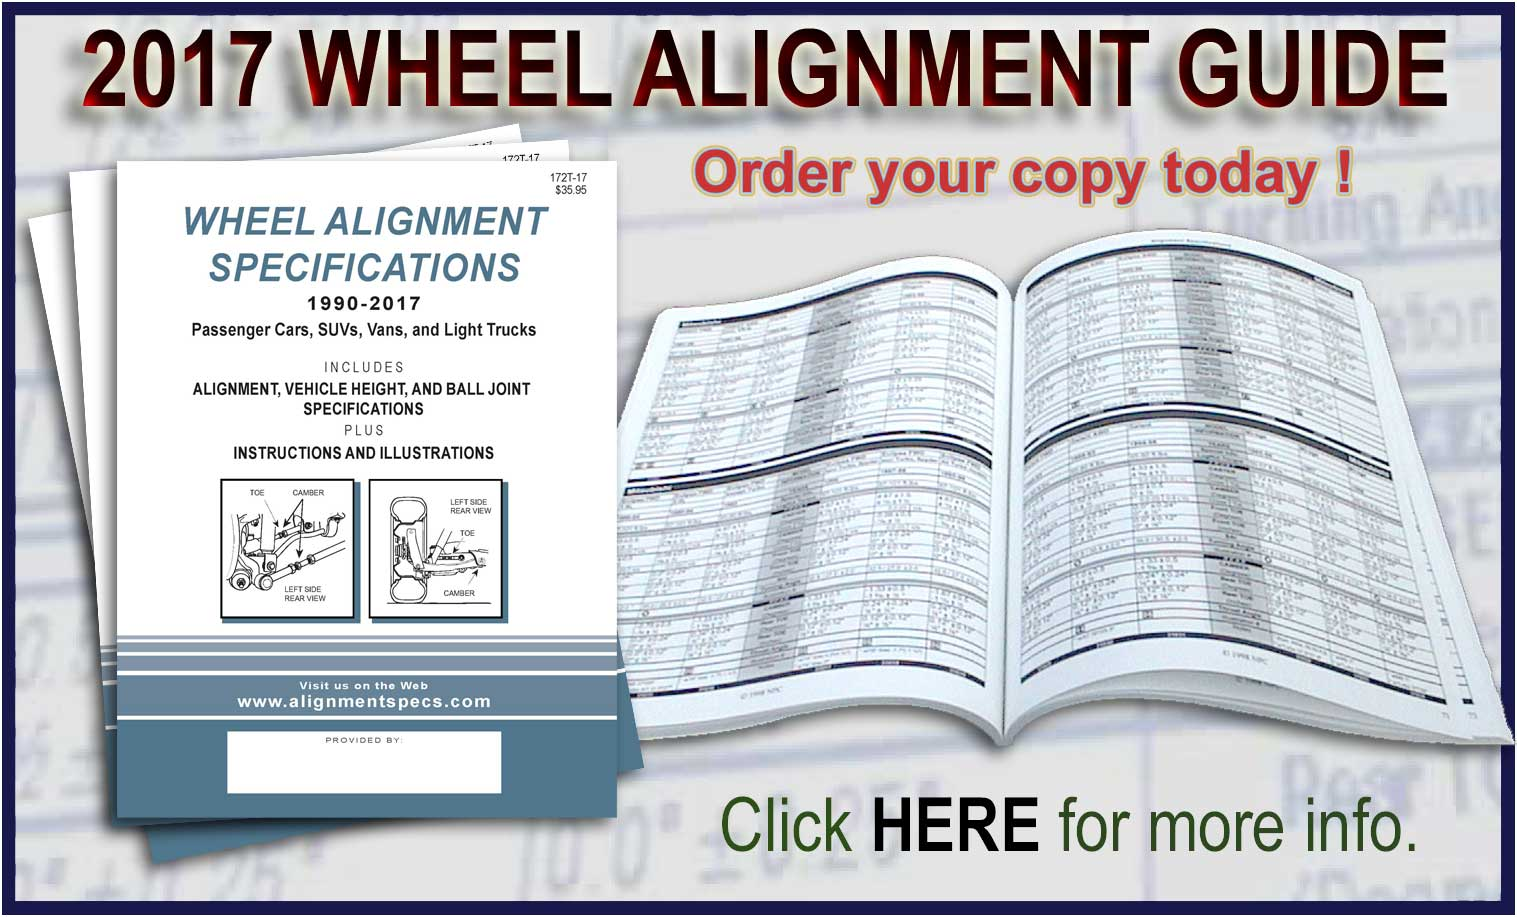 Wheel Alignment Guide, Old Car Spec Guide